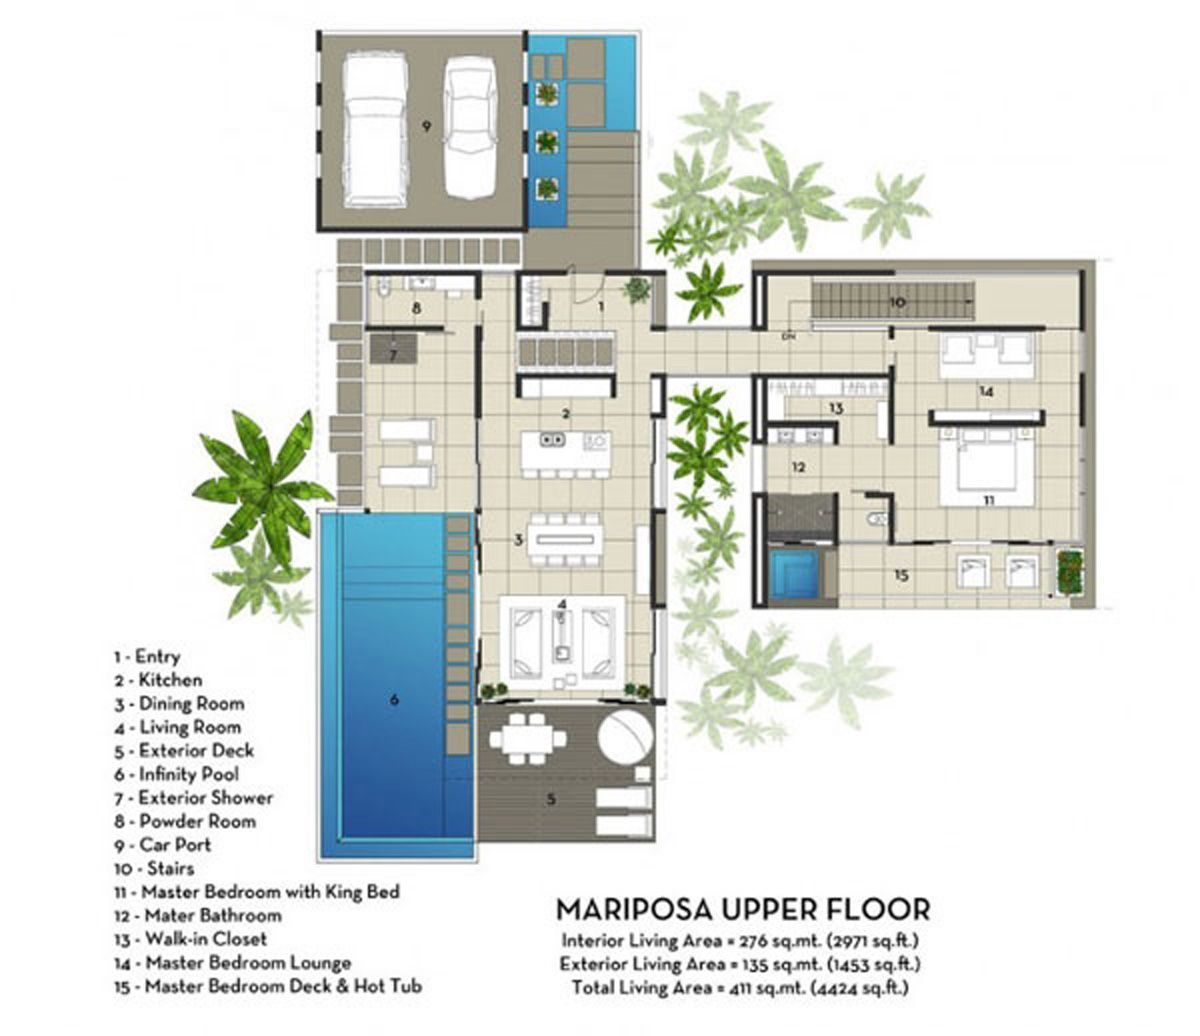 House plan mariposa 1200 1036 architecture pinterest villa plan ocean view Modern residential house plans